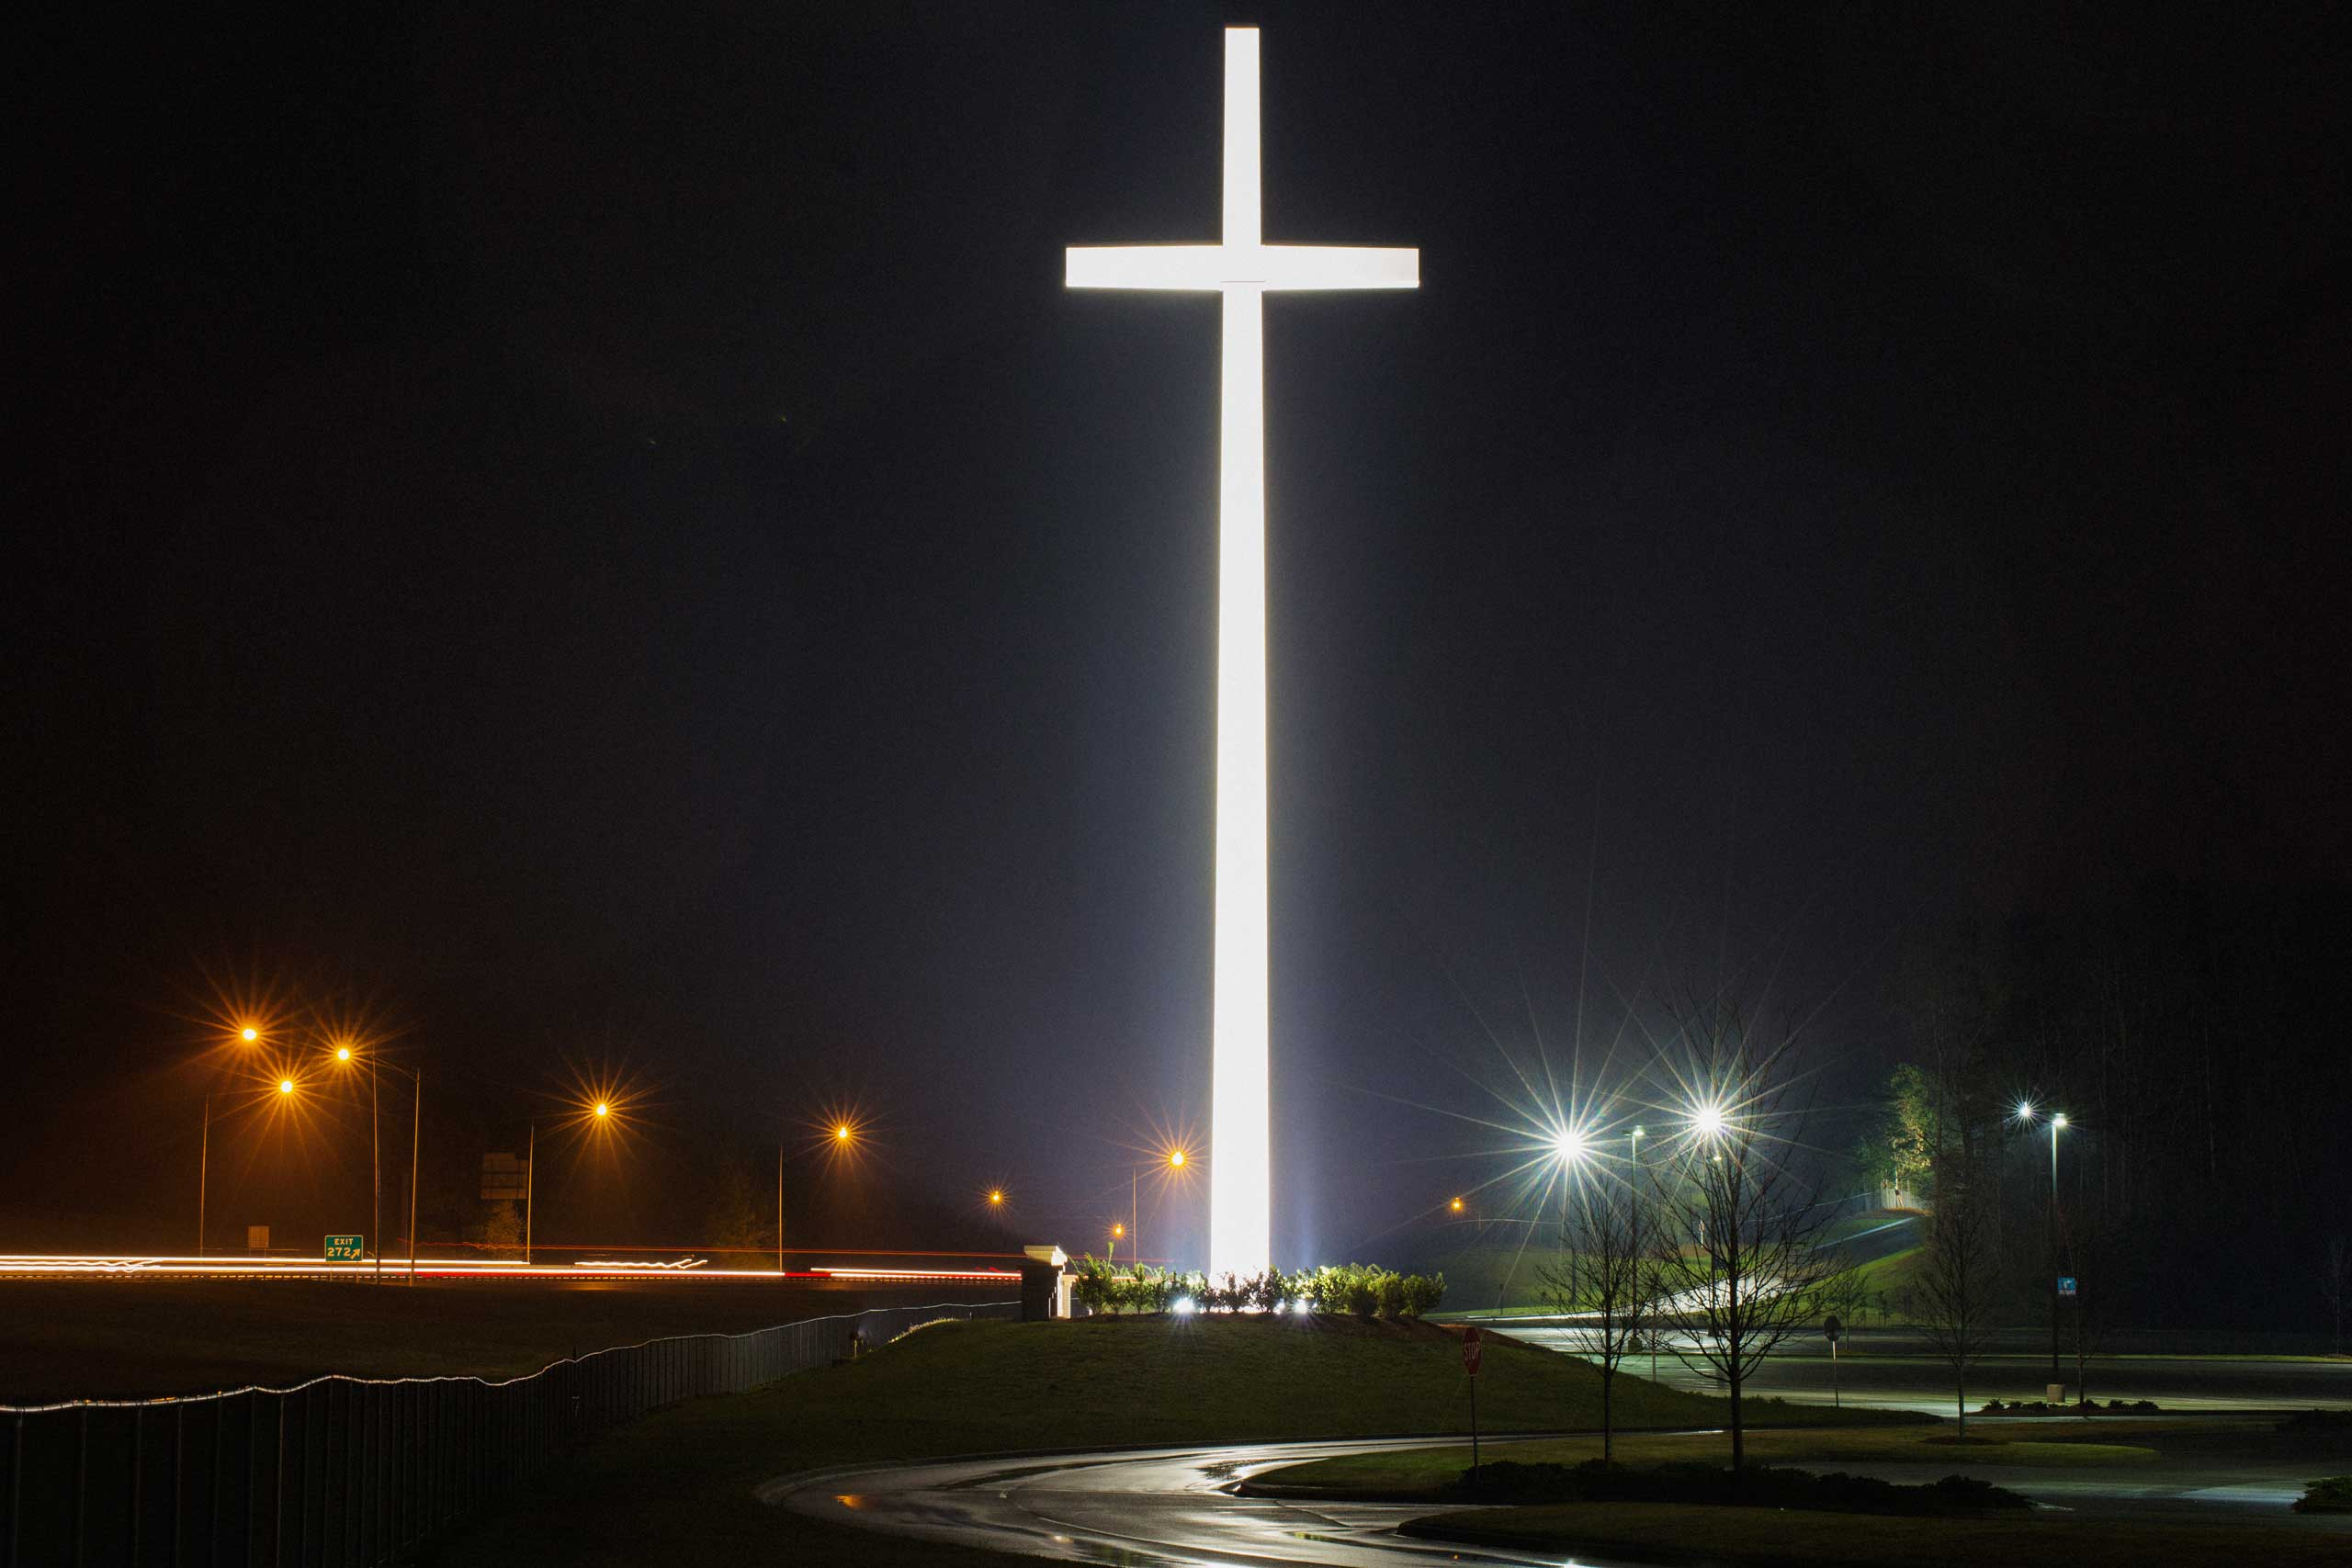 A giant cross by highway I-65 marks the site of Gardendale First Baptist Church in Gardendale, Ala. on March 21, 2015.